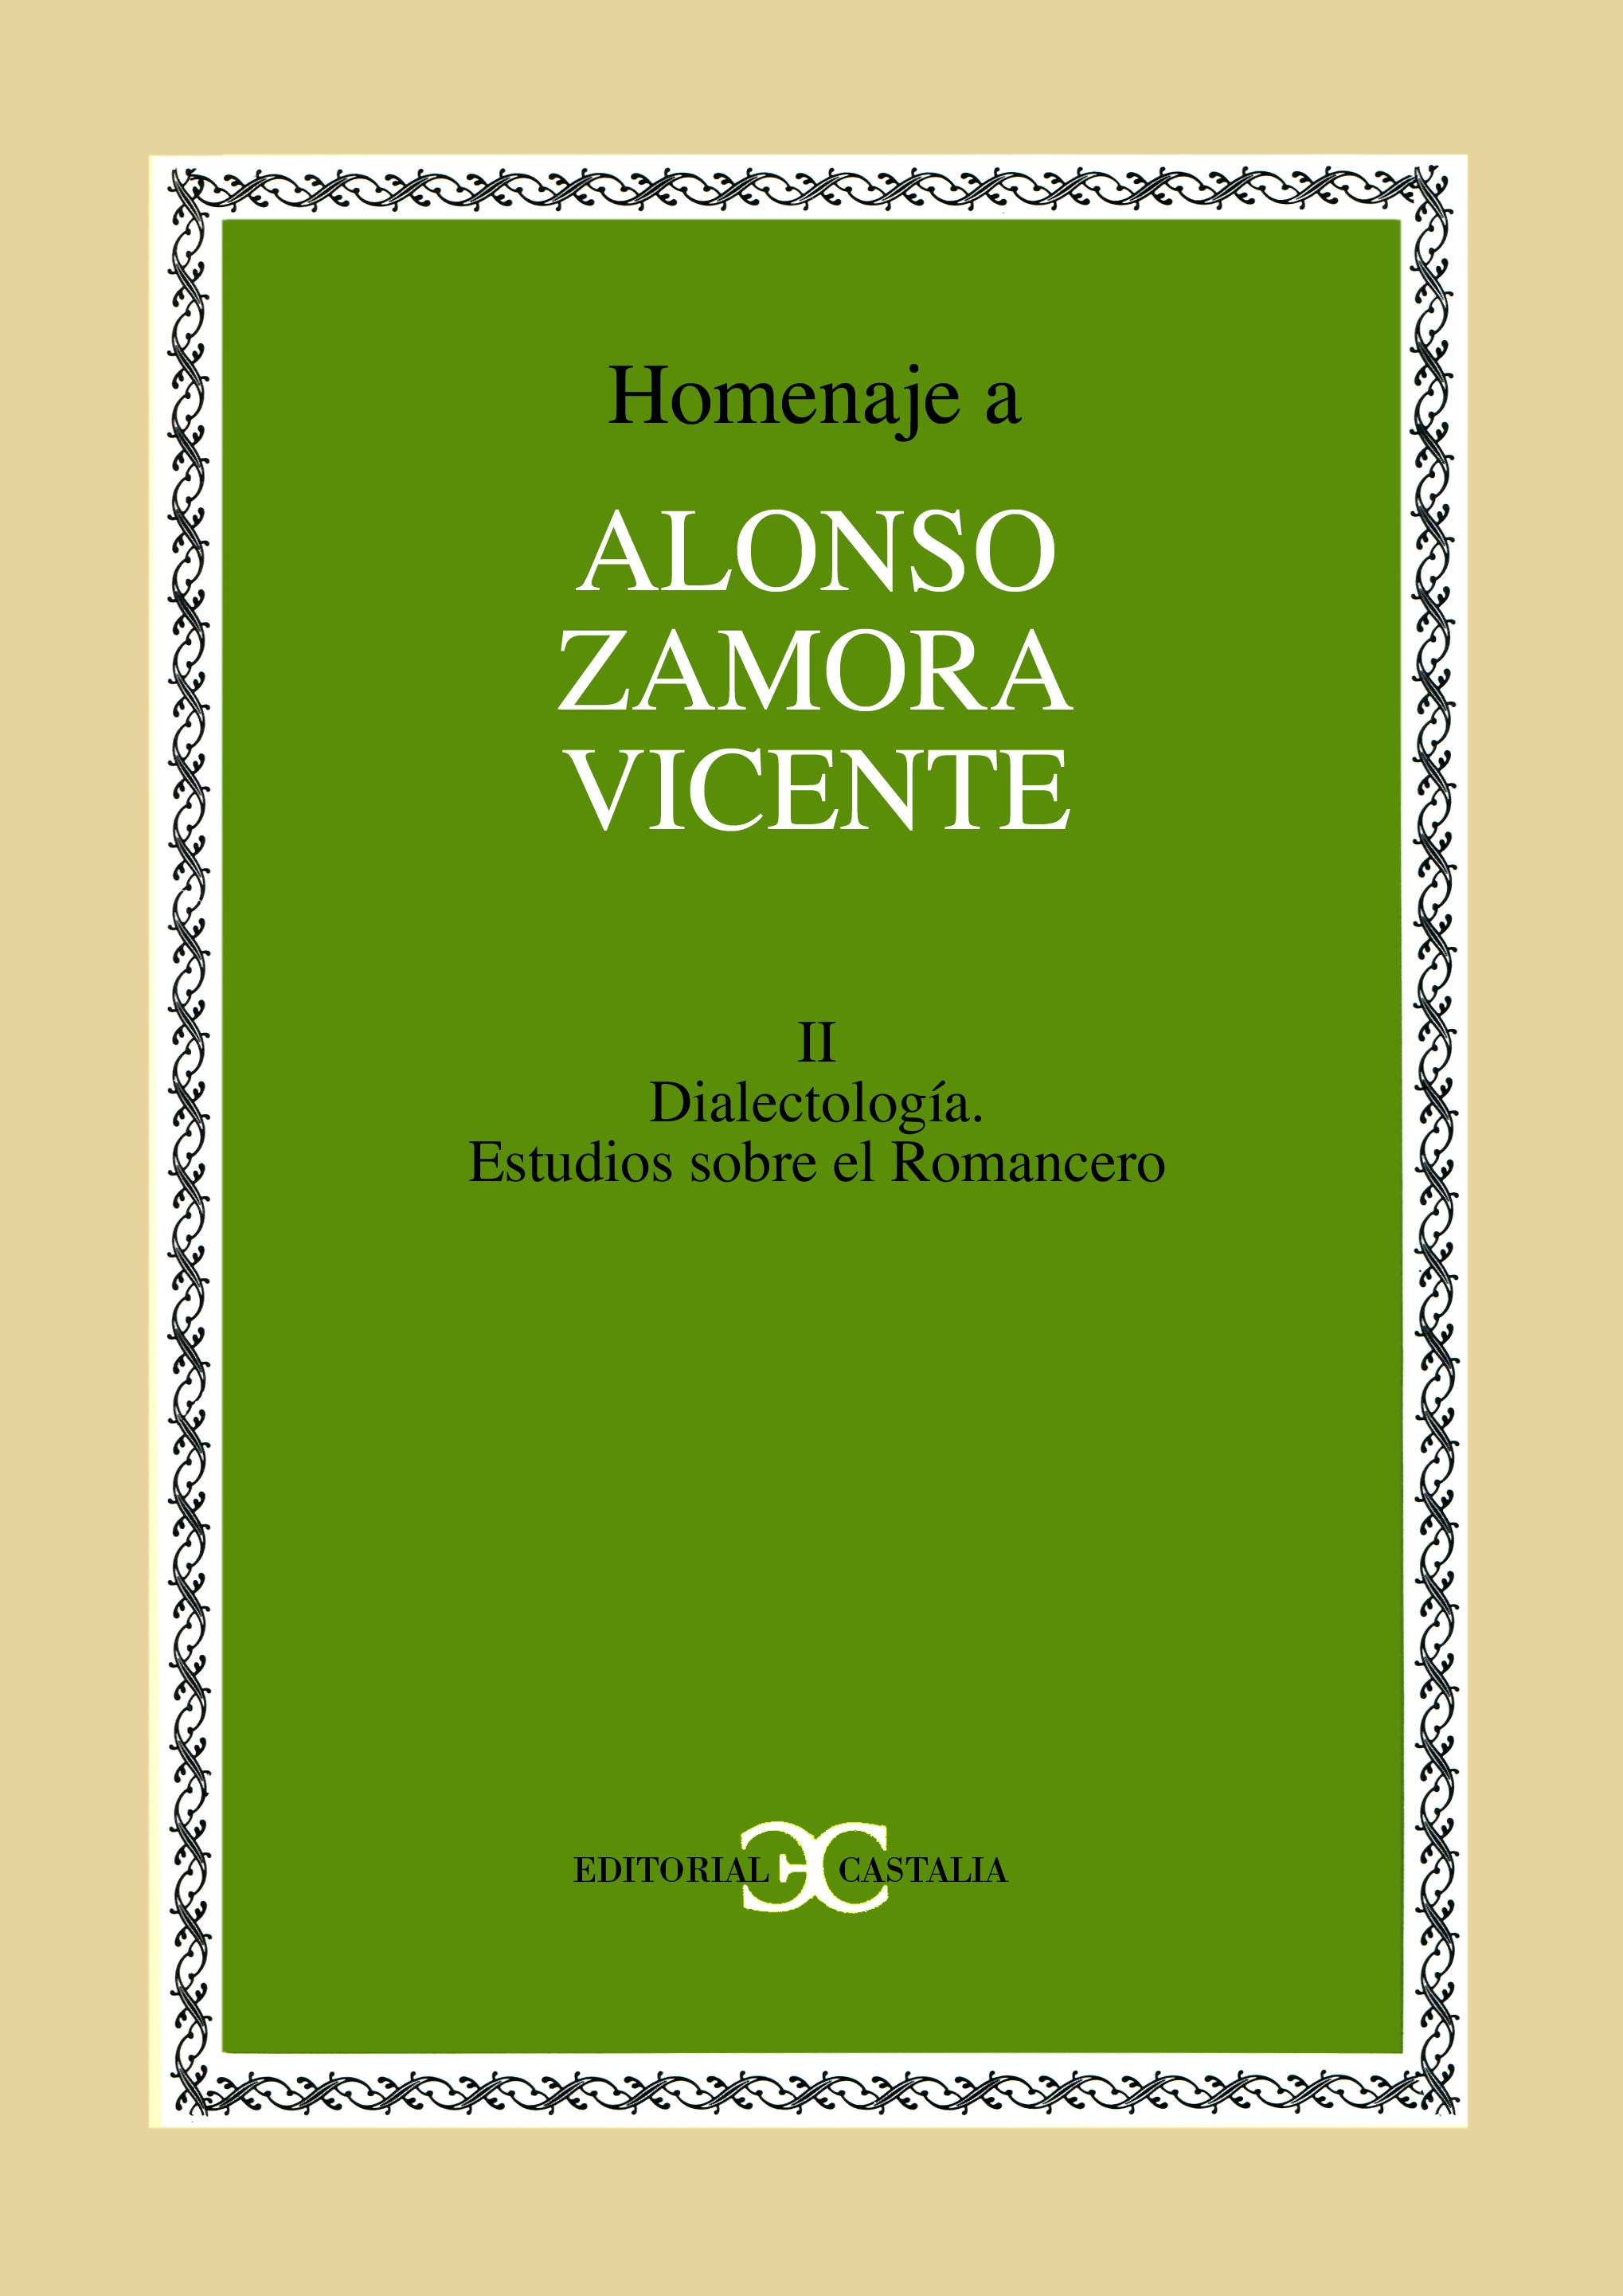 Homenaje a Alonso Zamora Vicente. Volumen II